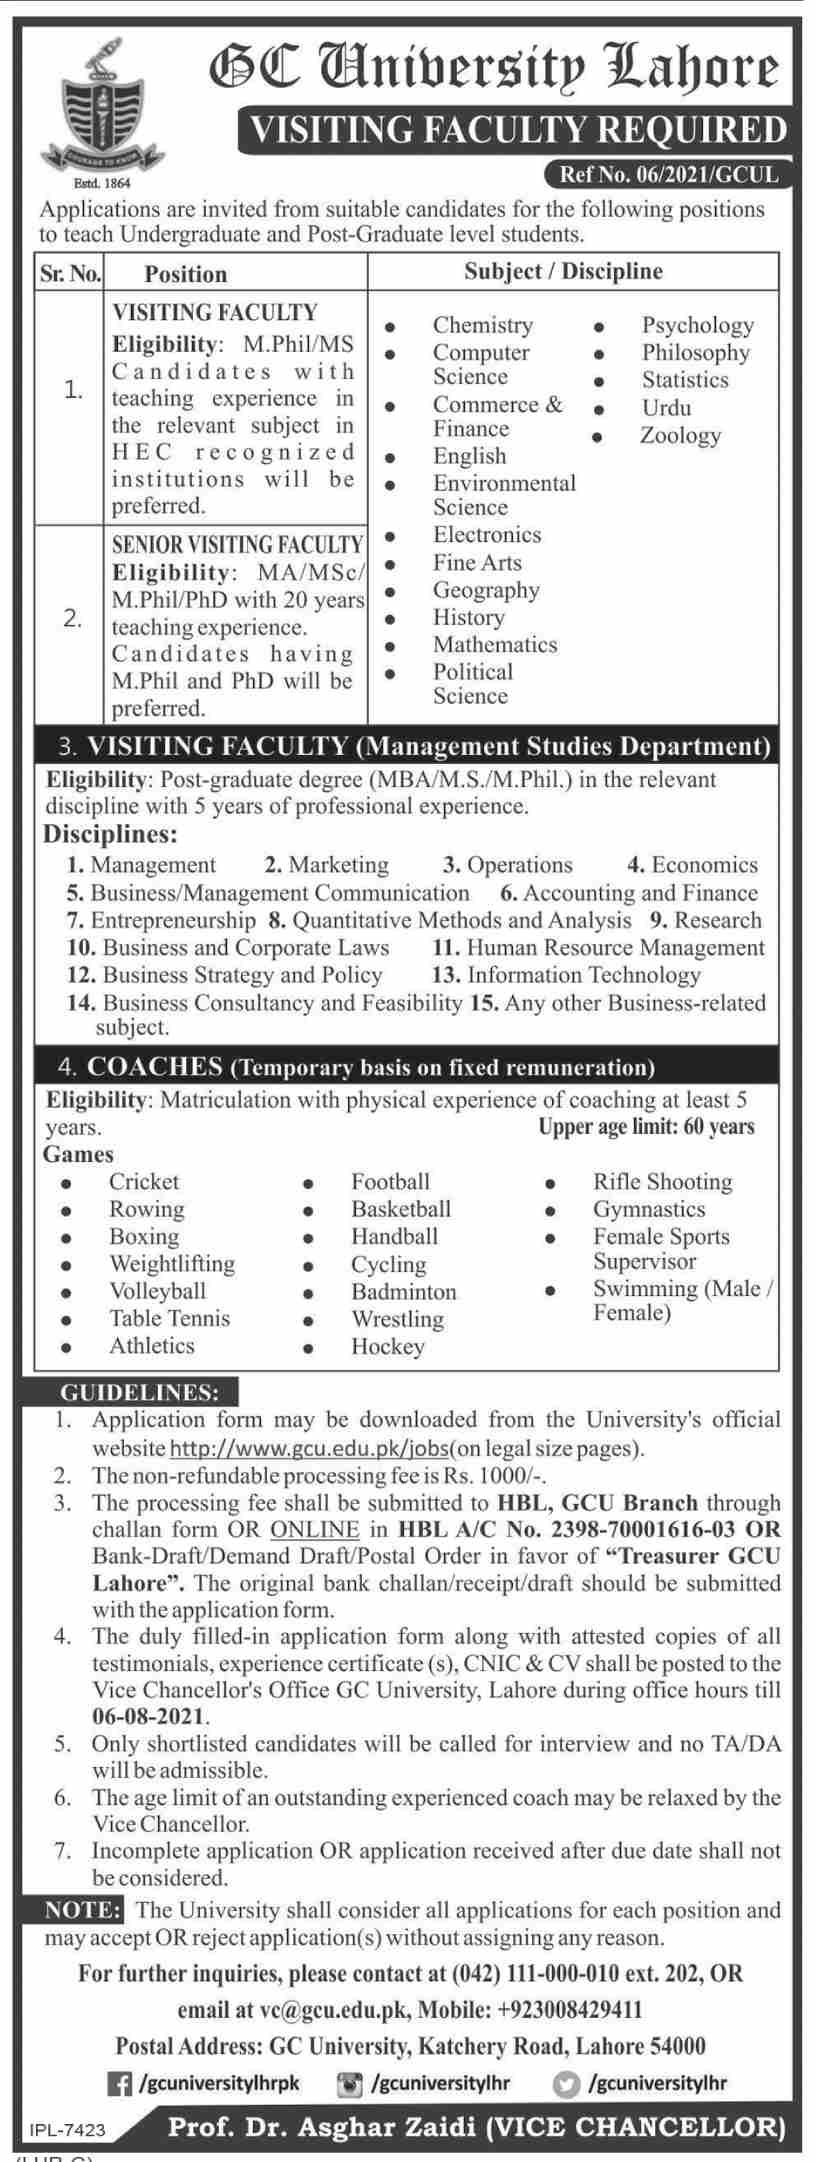 Government College University GCU Lahore Visiting Faculty Jobs 2021 Advertisement: